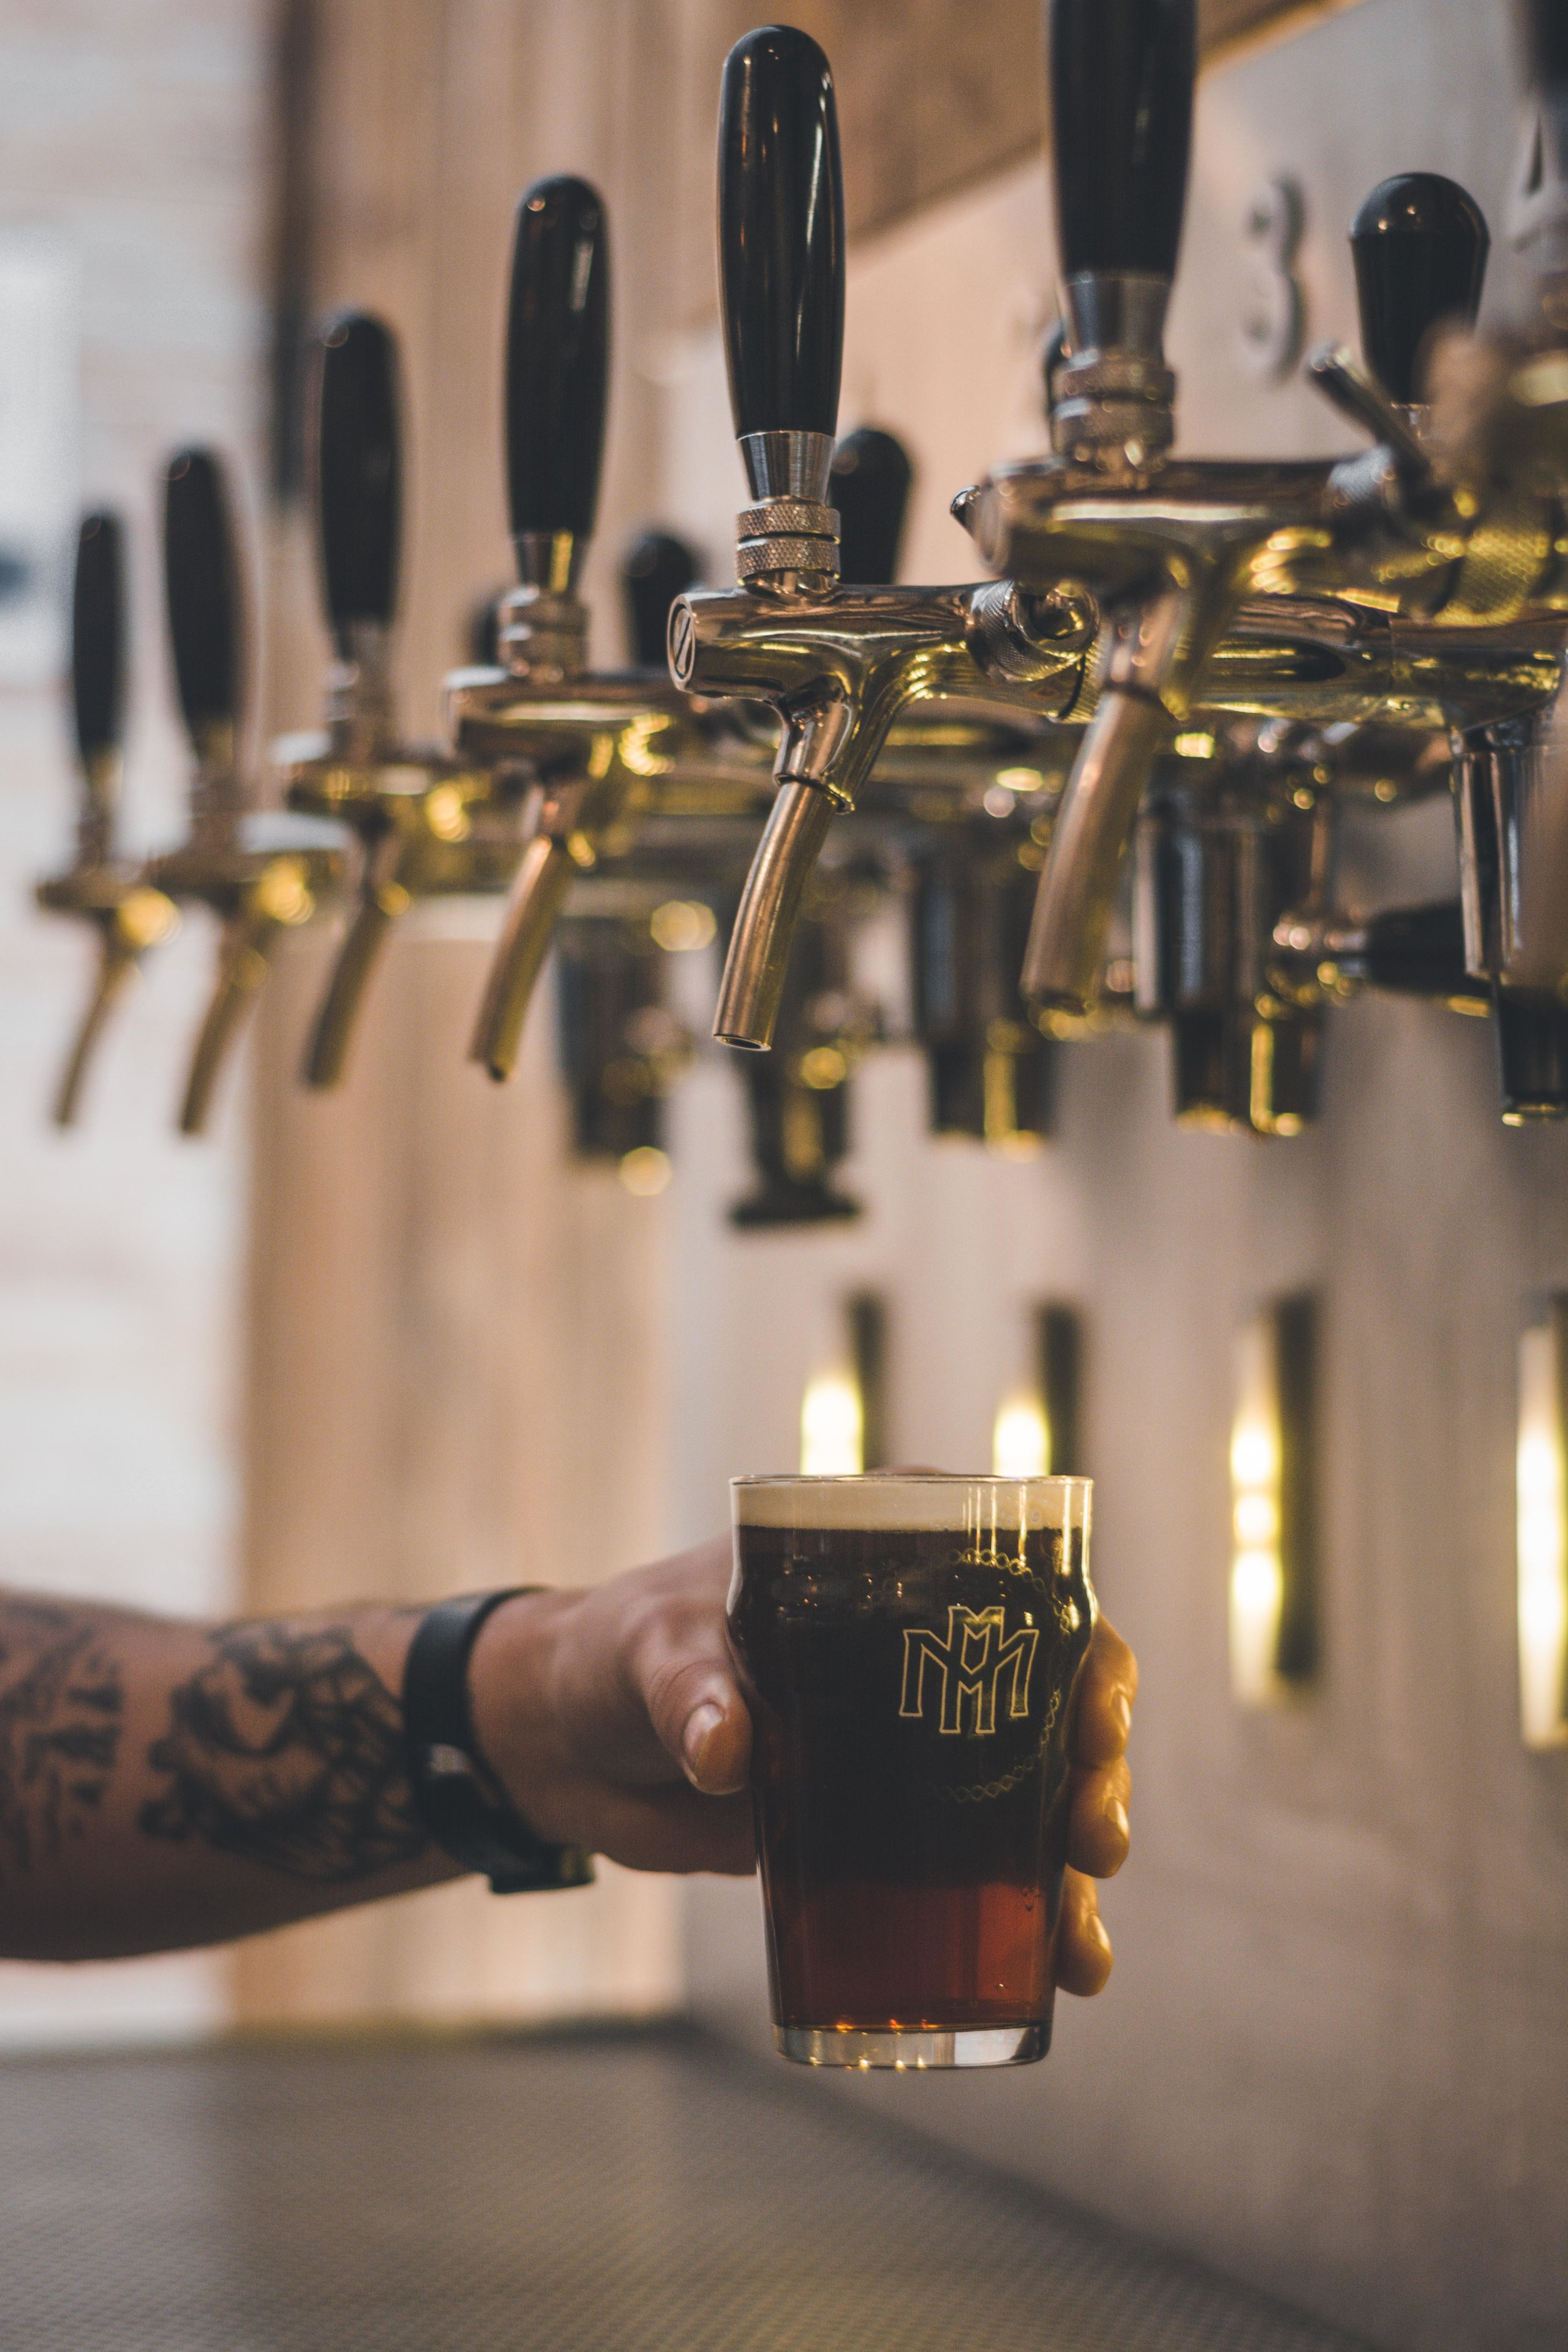 Beer is diversity. Beer is both counterculture and the norm.